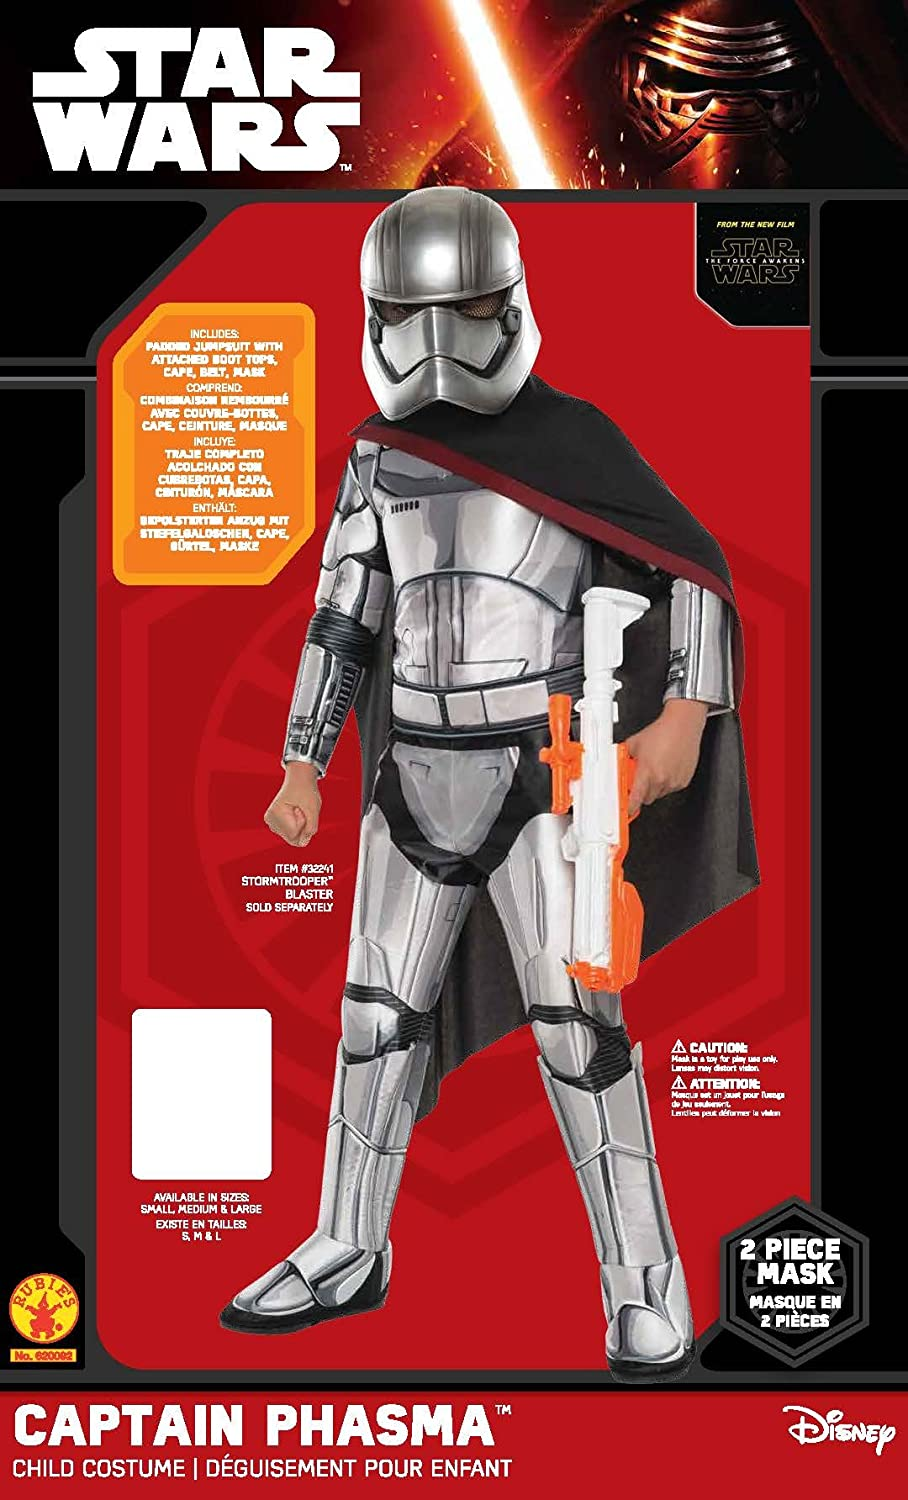 Star Wars: The Force Awakens Childs Super Deluxe Captain Phasma Costume, Small